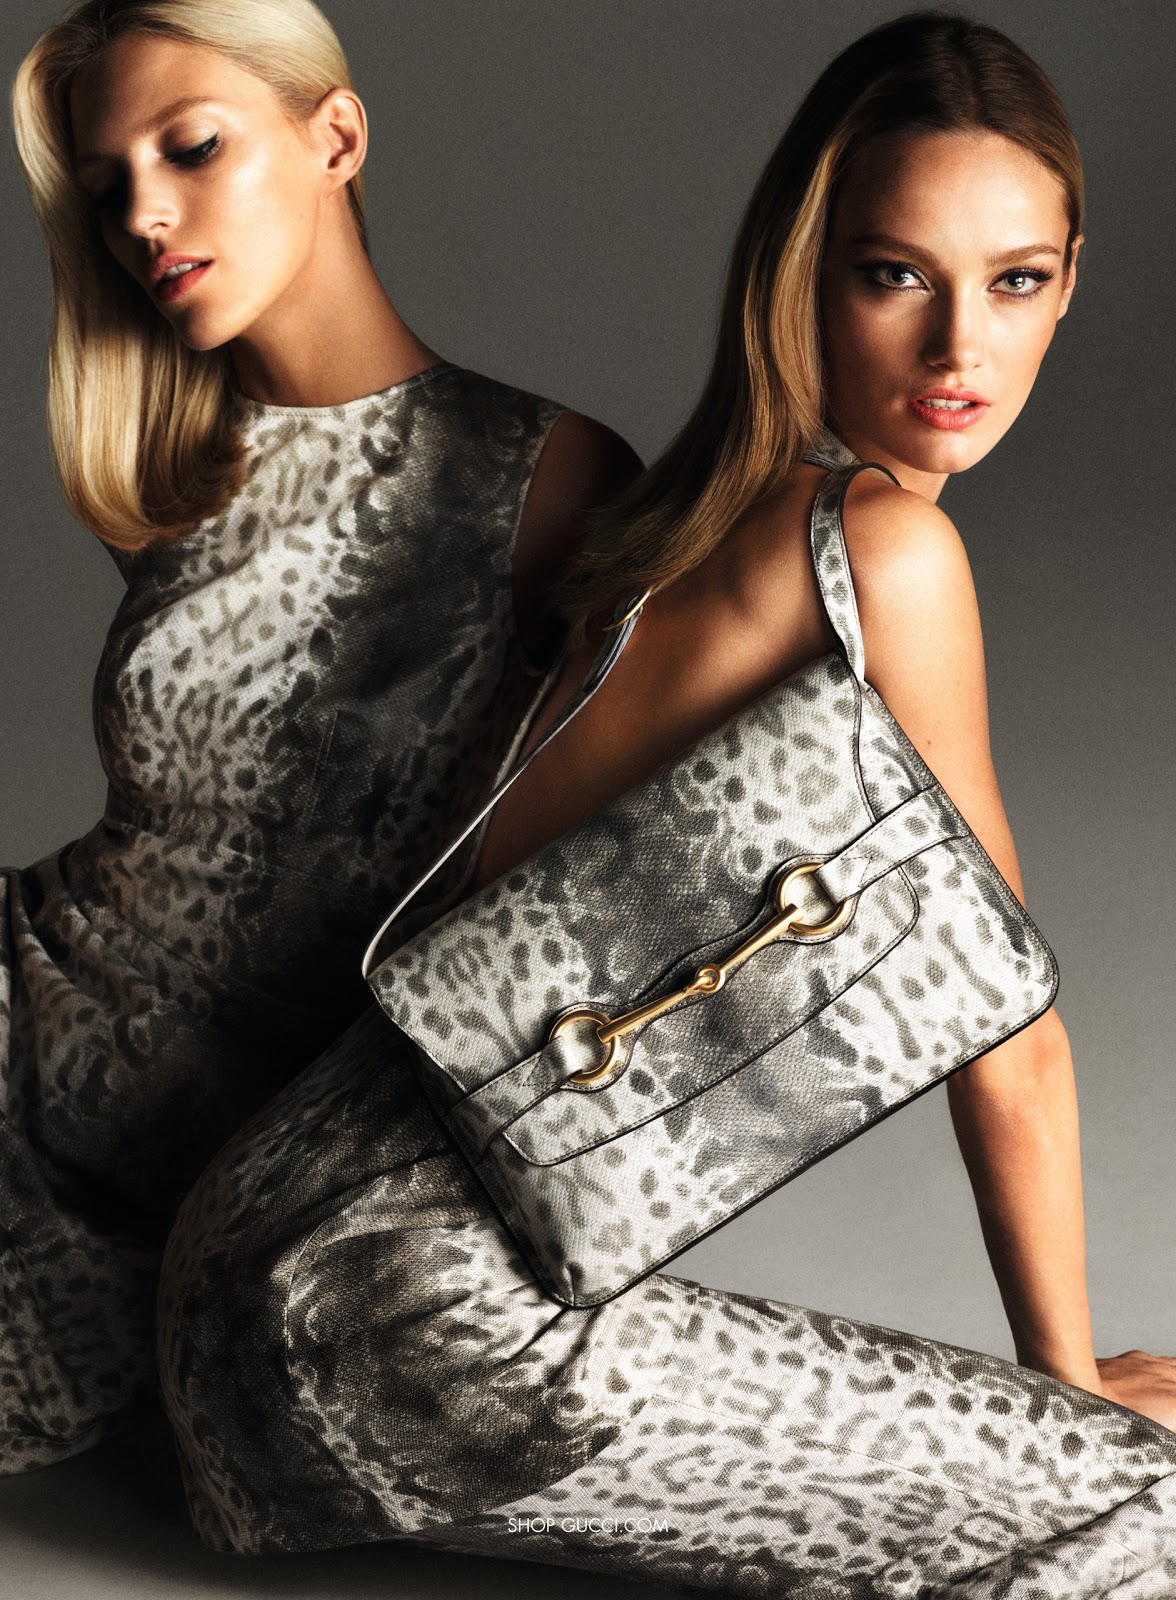 Gucci's Spring/Summer 2013 Ad Campaign and SS13 Bags!